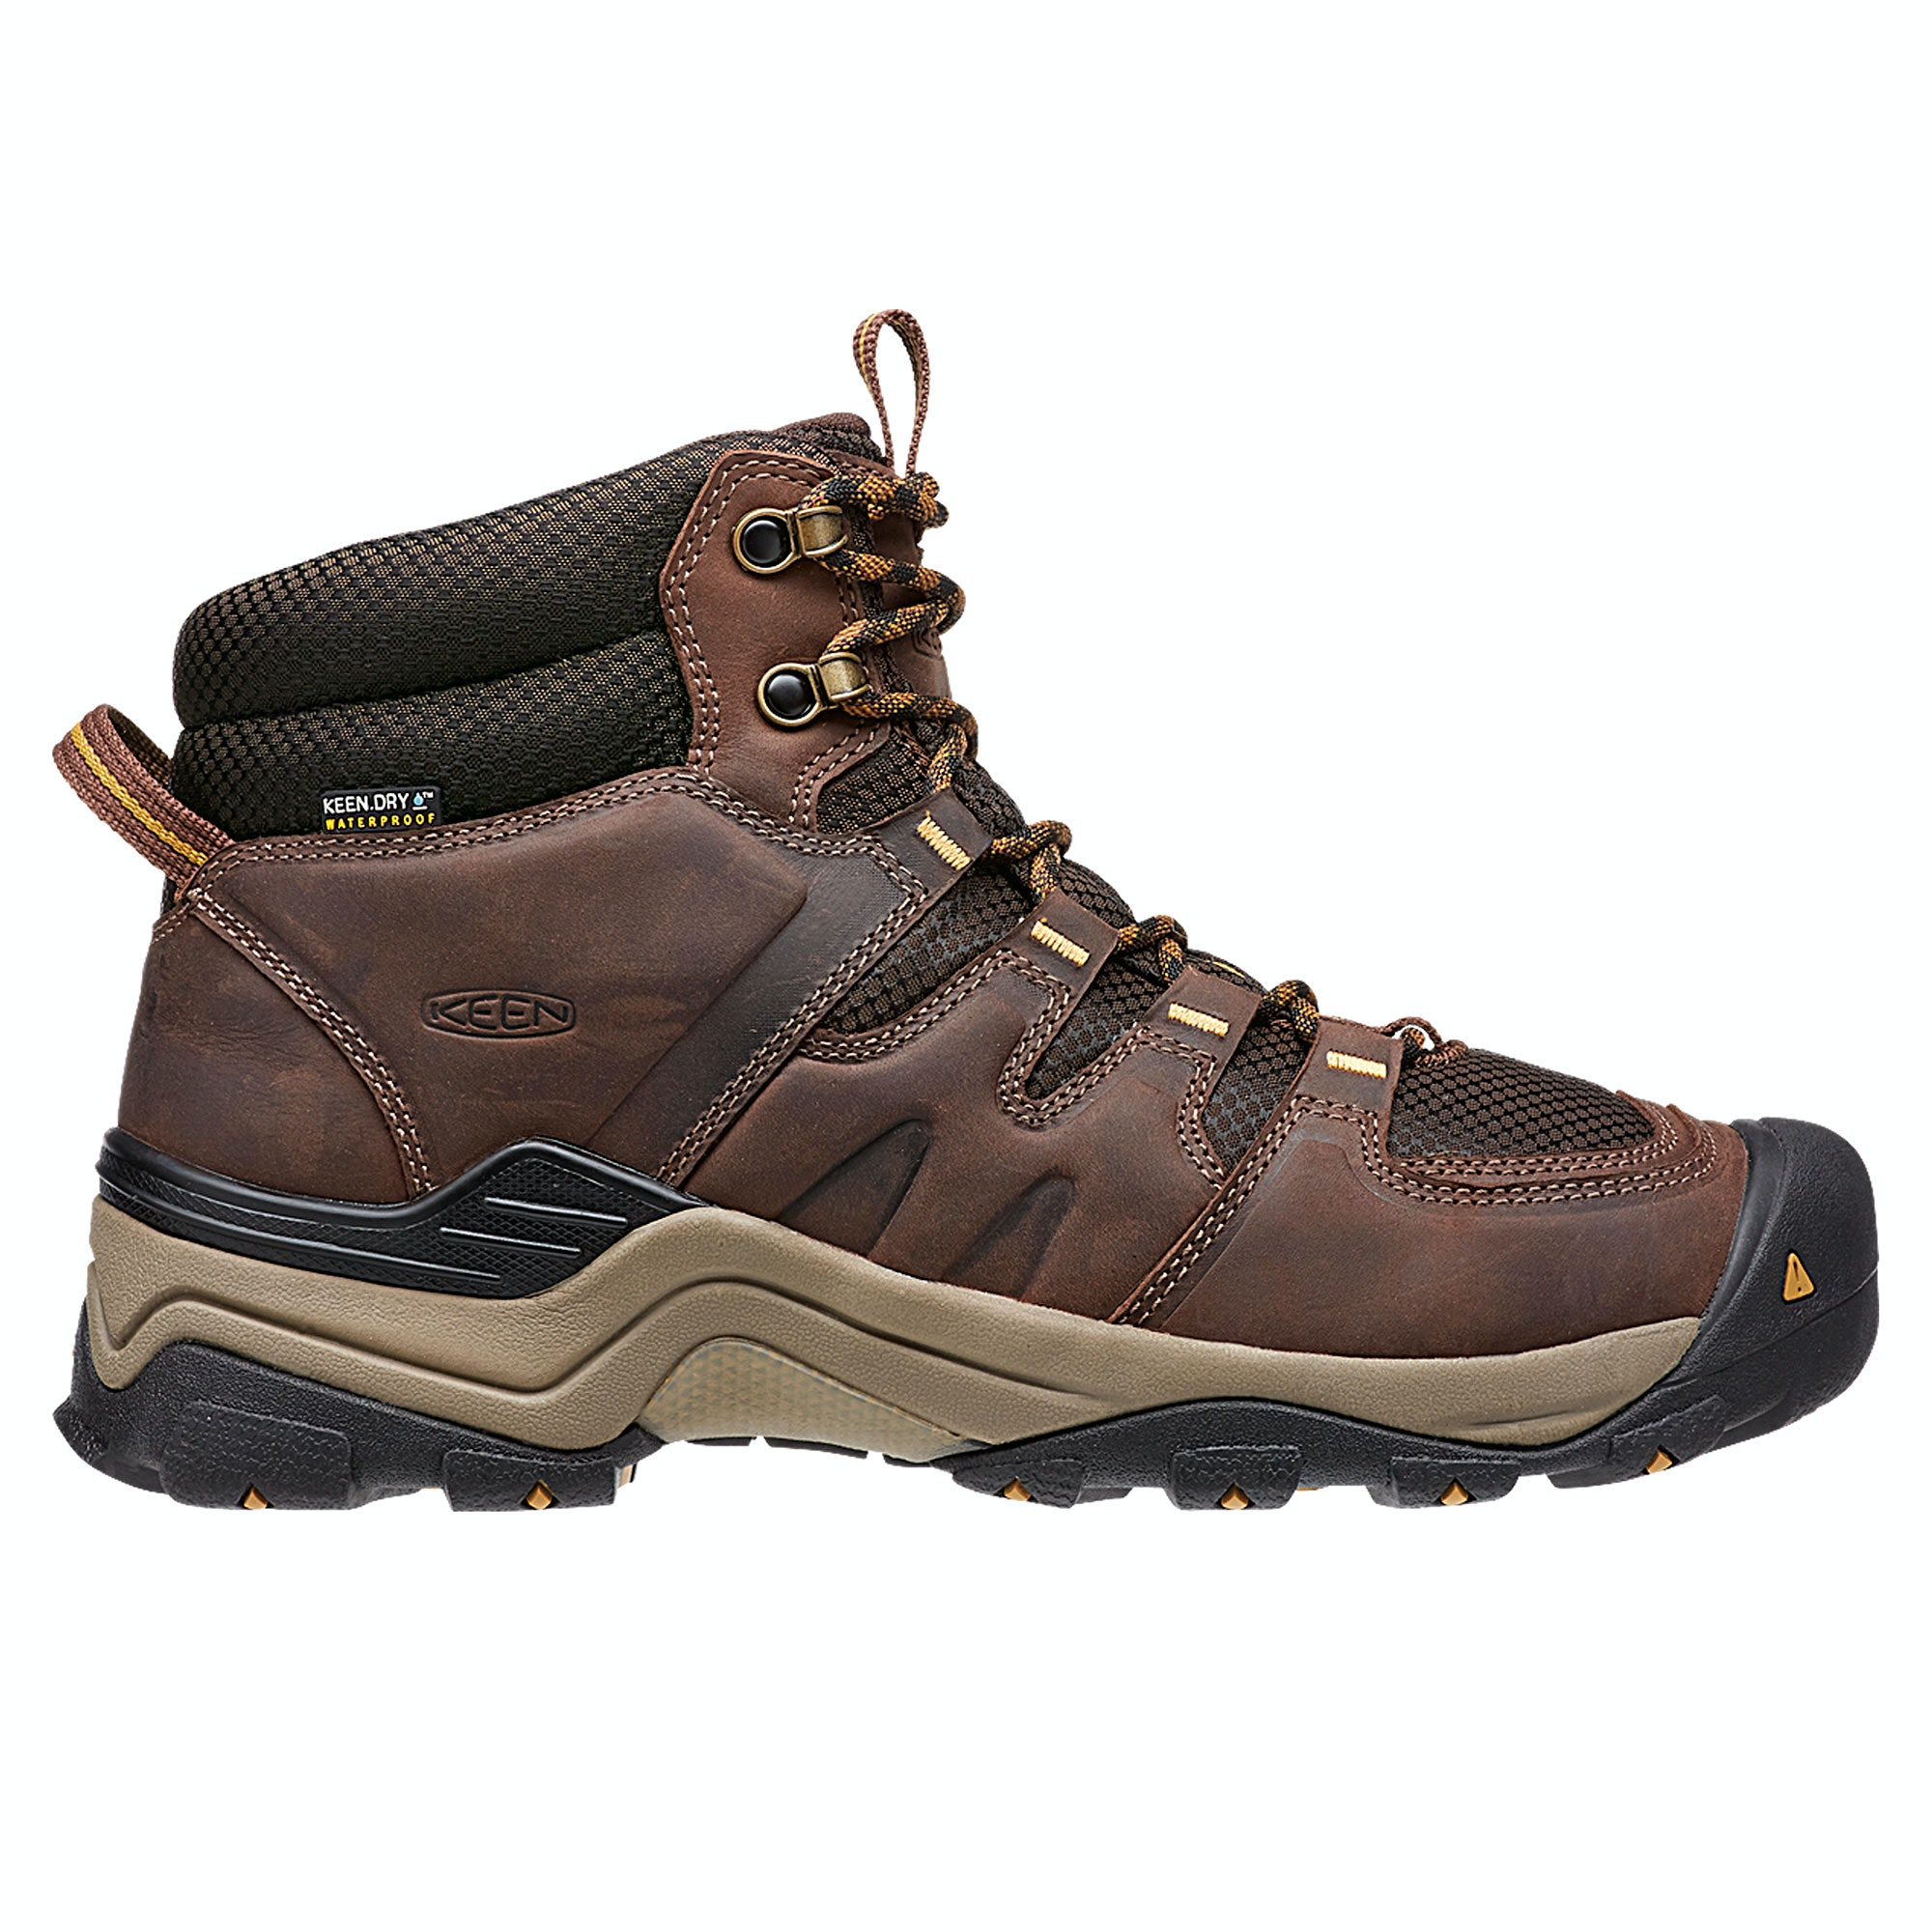 mornington comforter b women morningtonngx boot ngx hiking womens s most extra comfortable boots